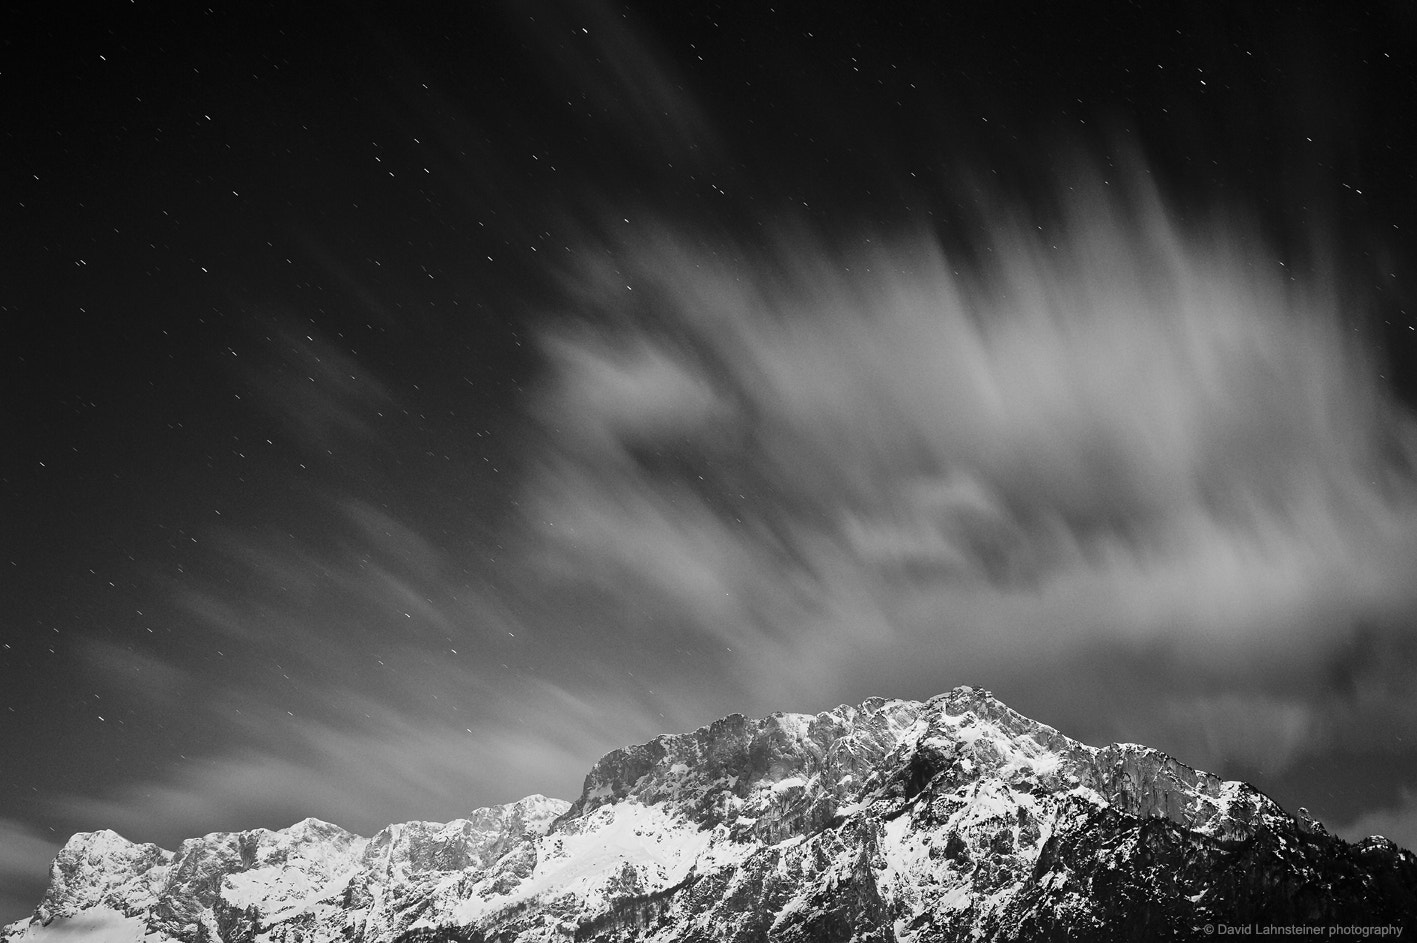 Photograph Cloudy Mountain by David Lahnsteiner on 500px